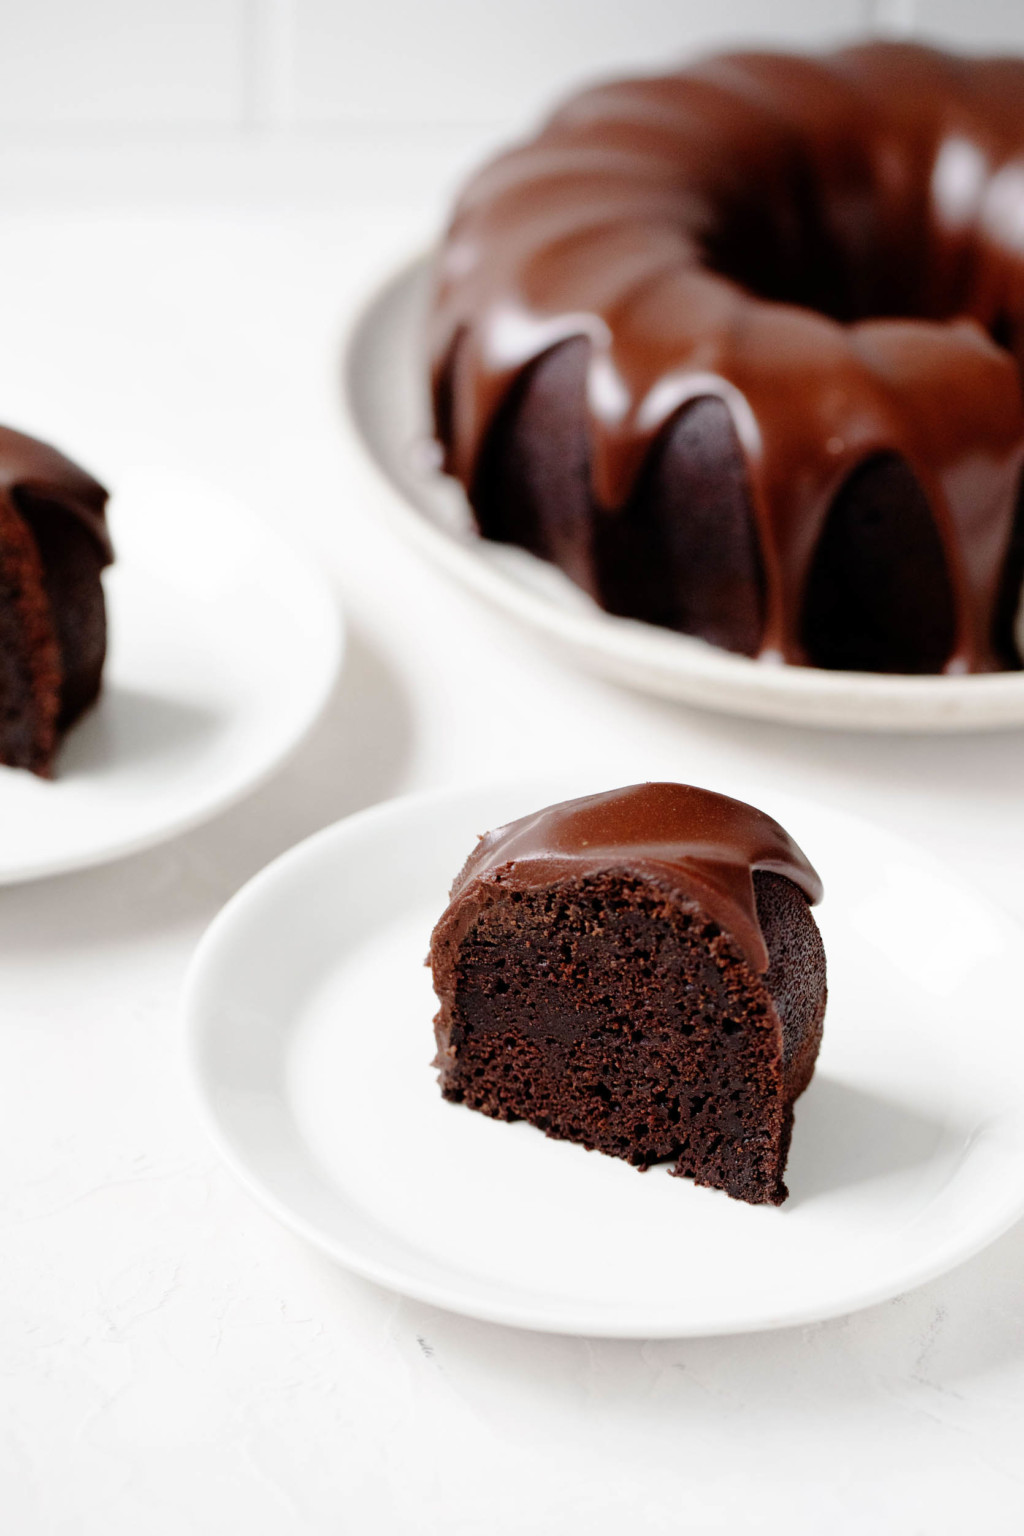 A slice of chocolate cake is on a small dessert plate in the foreground. The entire, glazed cake is sitting on a serving dish in the background.